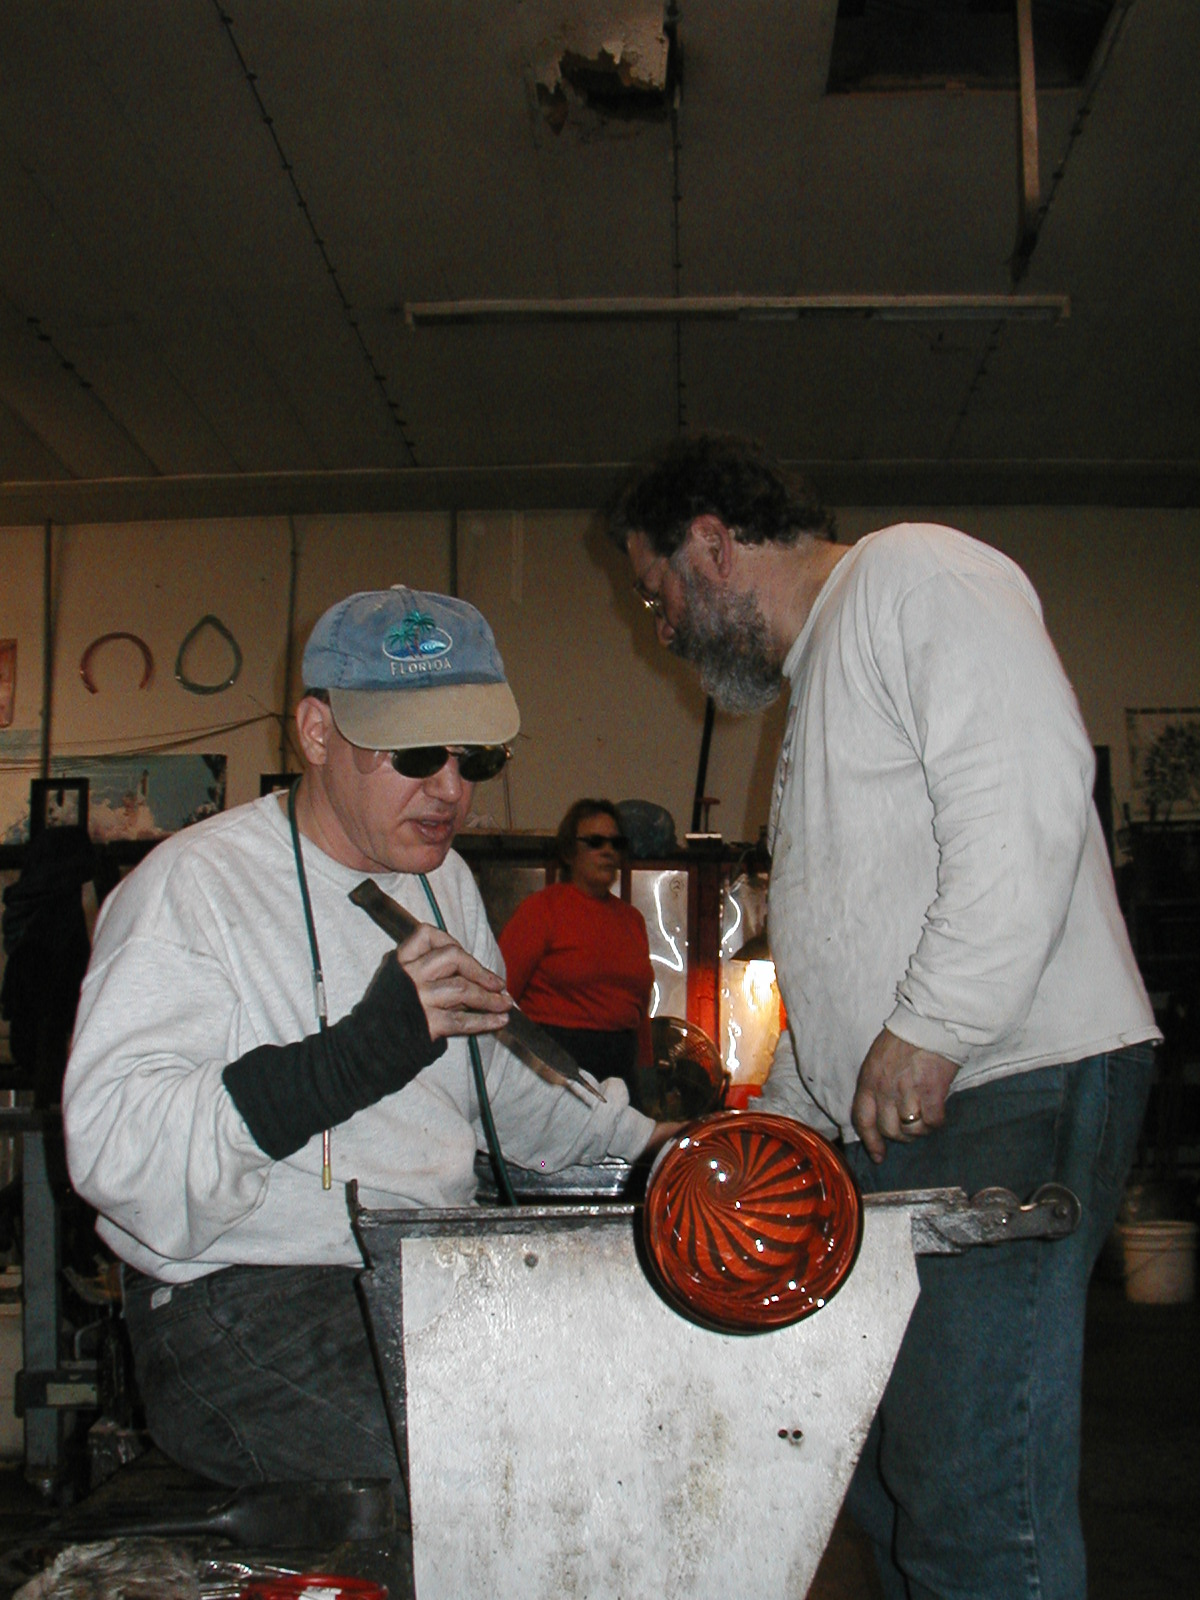 Glassblower.Info - Joel Bless Glasslight Glassblowing class January 18 2004 #121